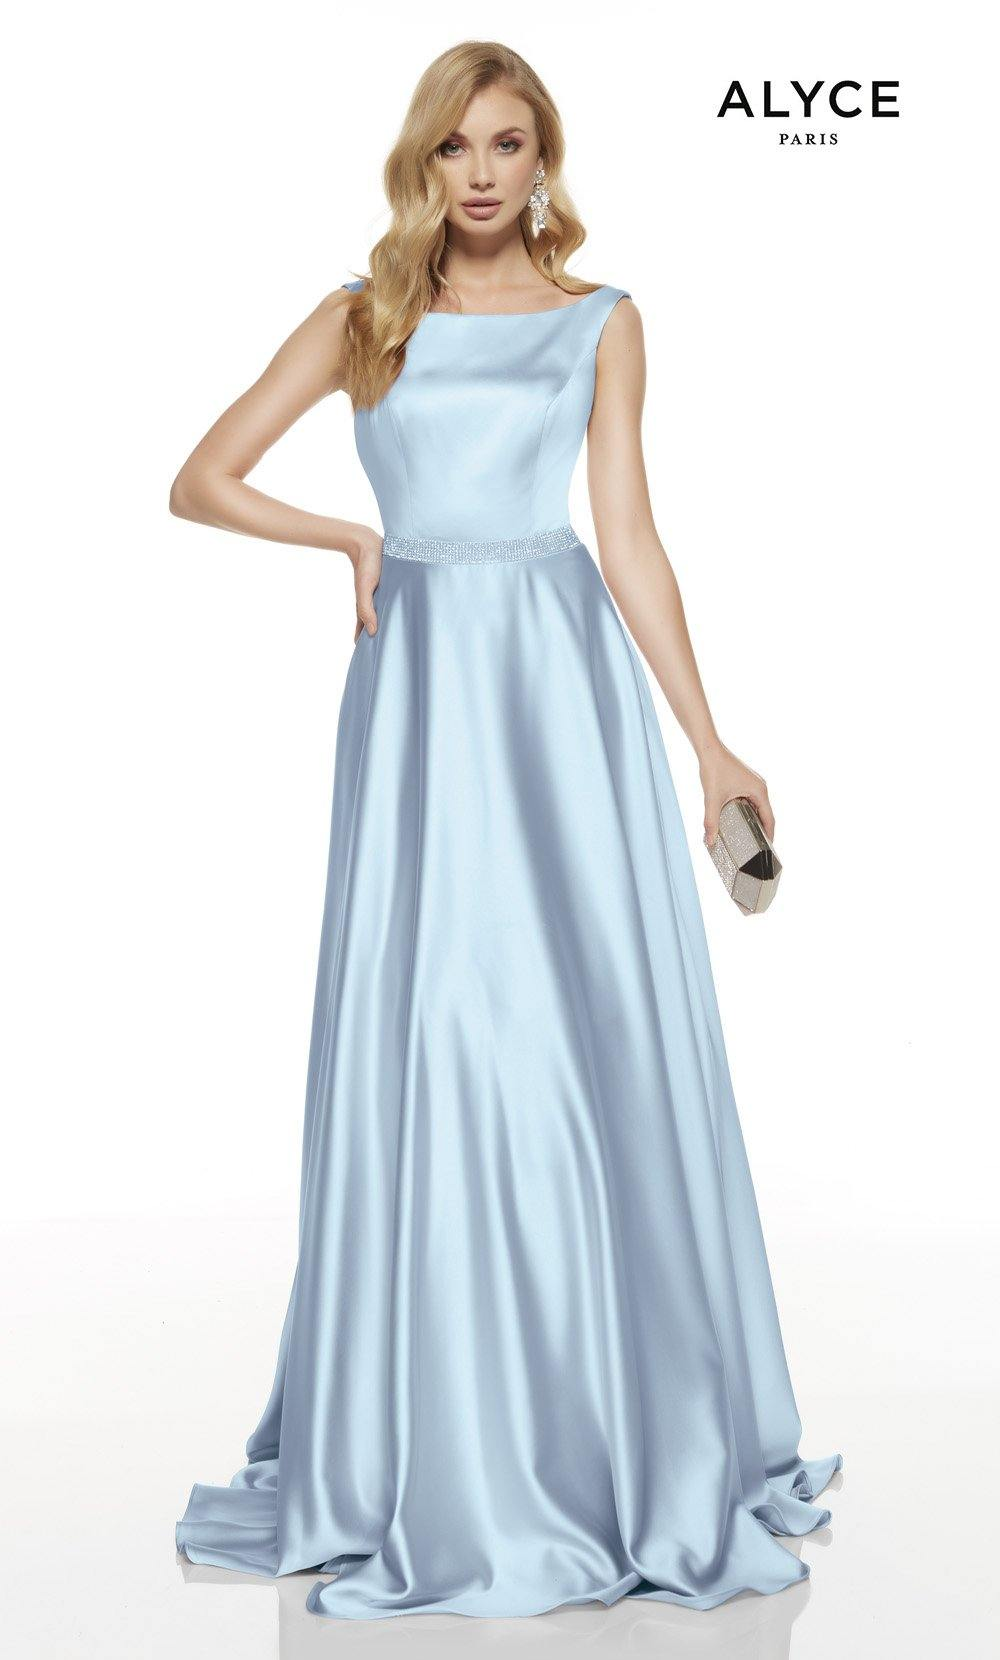 Ice Blue formal dress with a bateau neckline